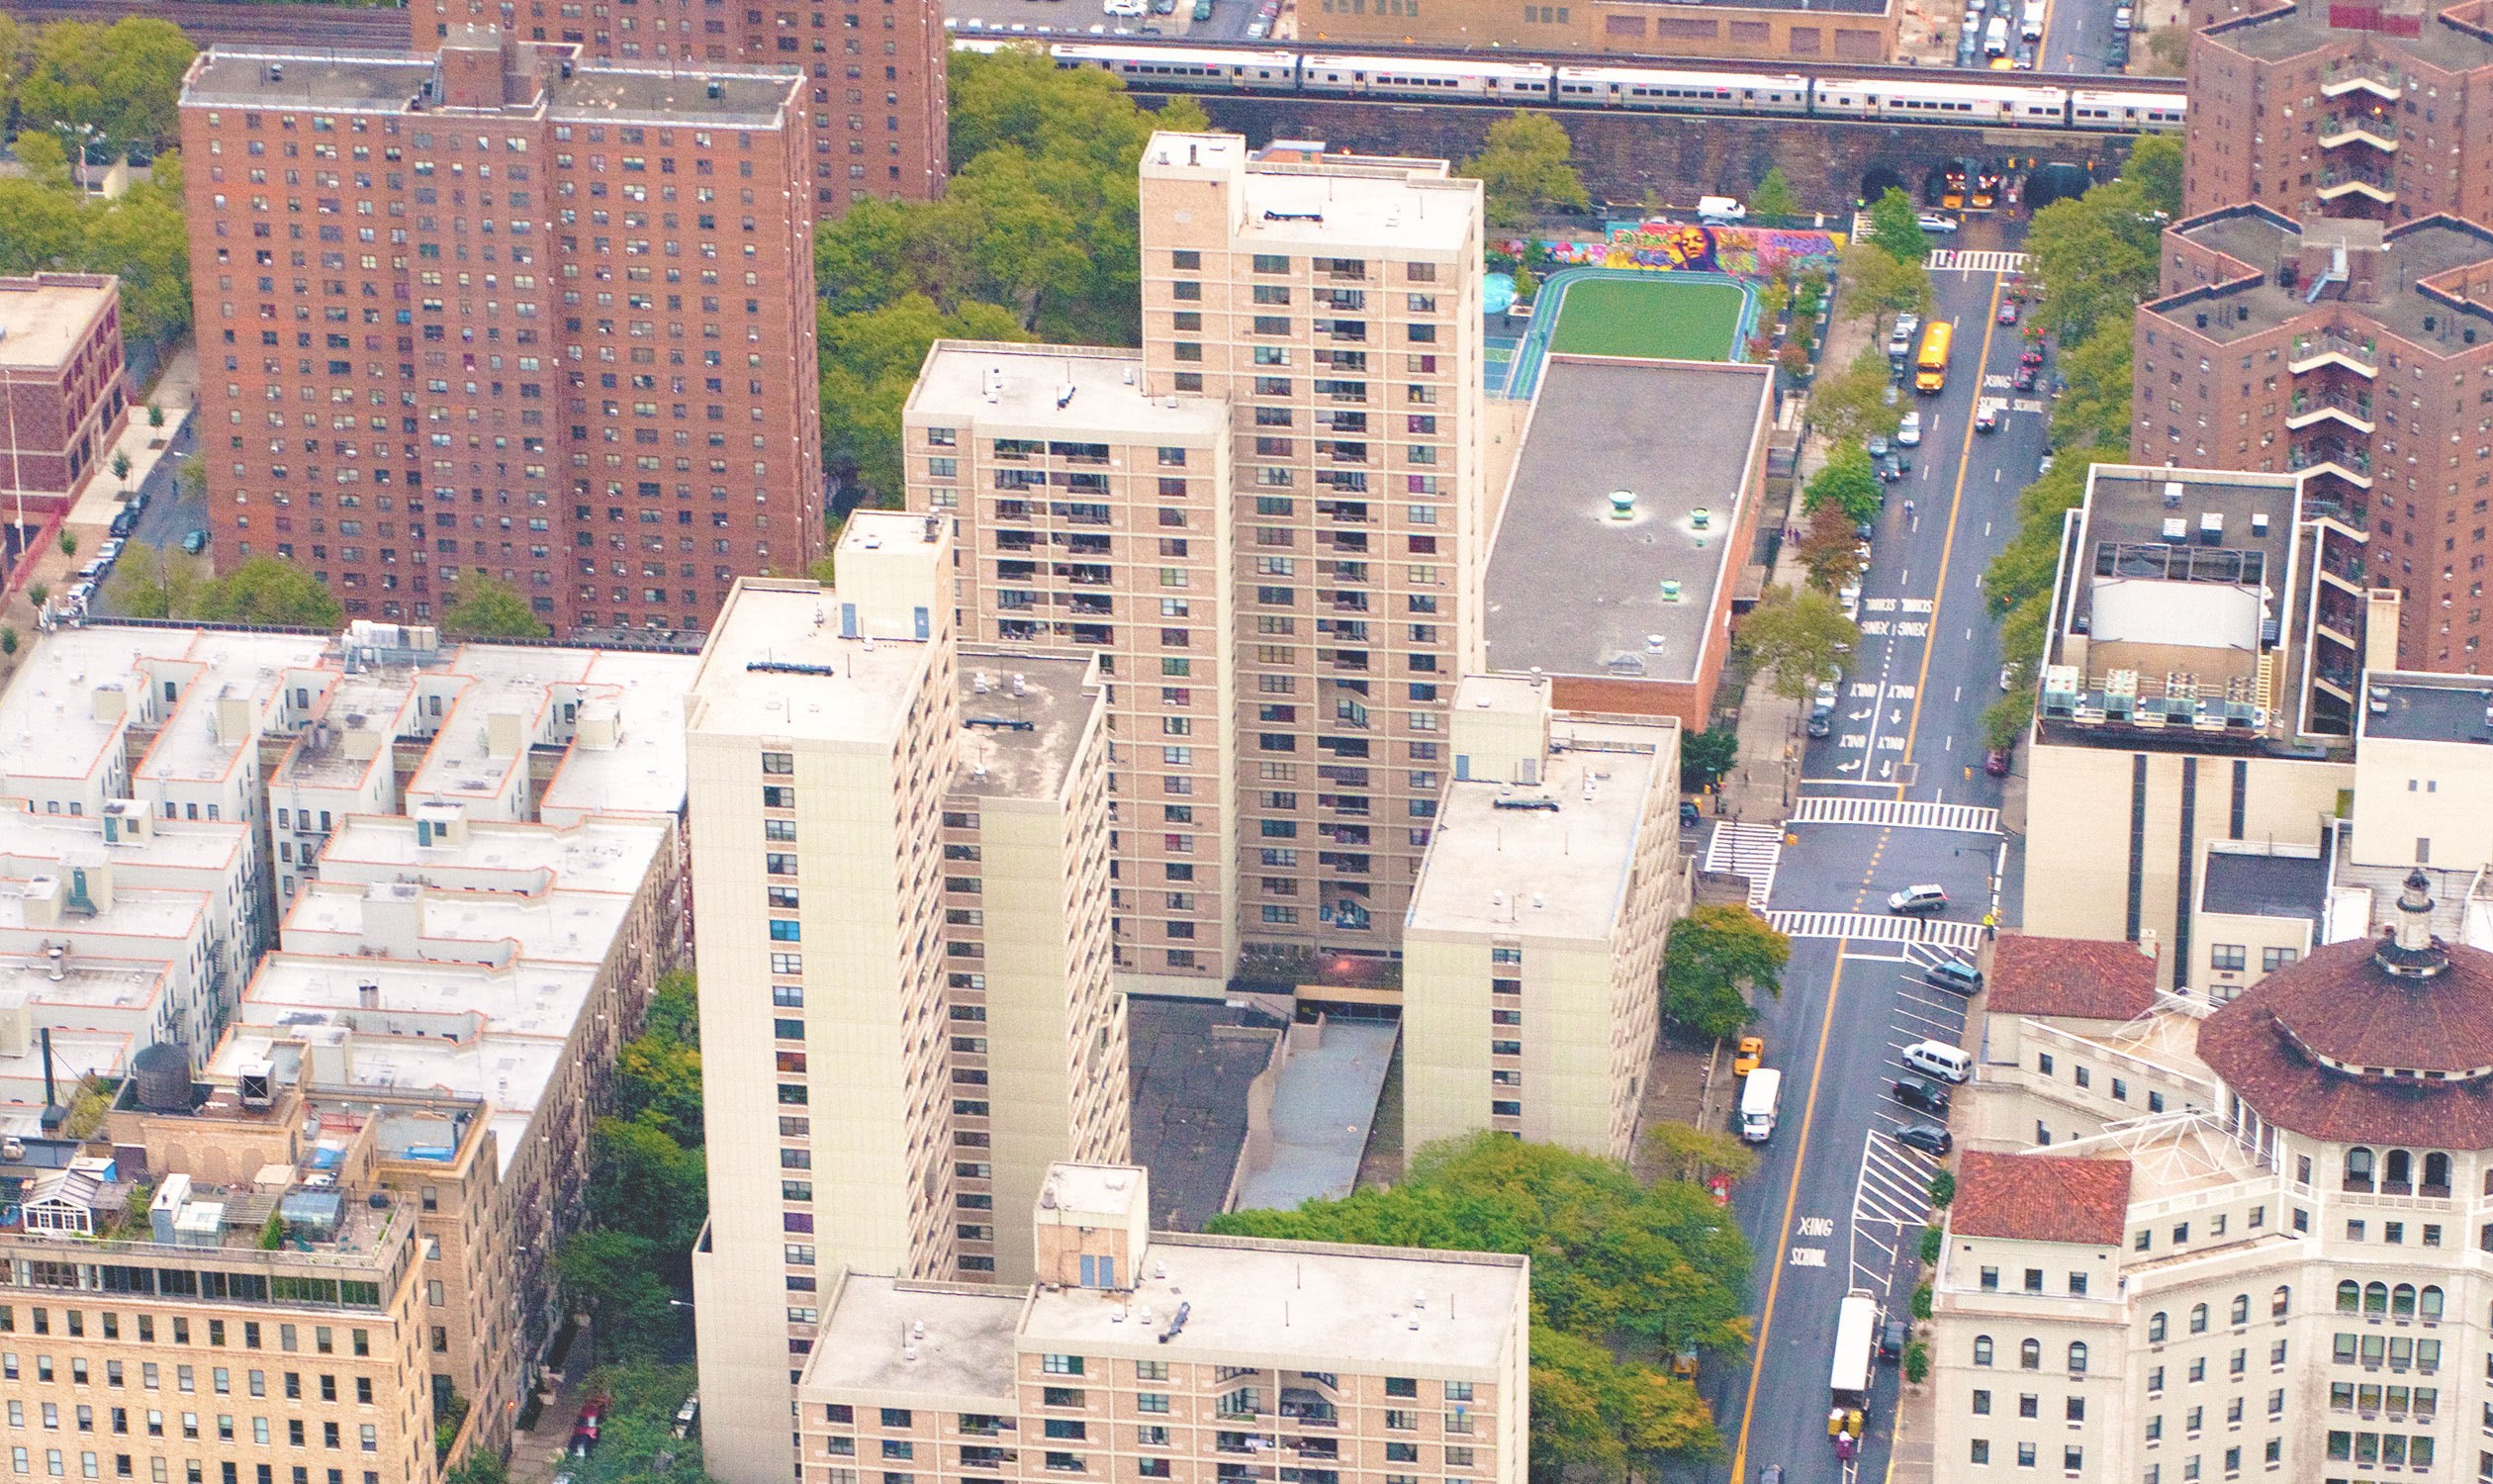 An aerial view of Lakeview Apartments looking East